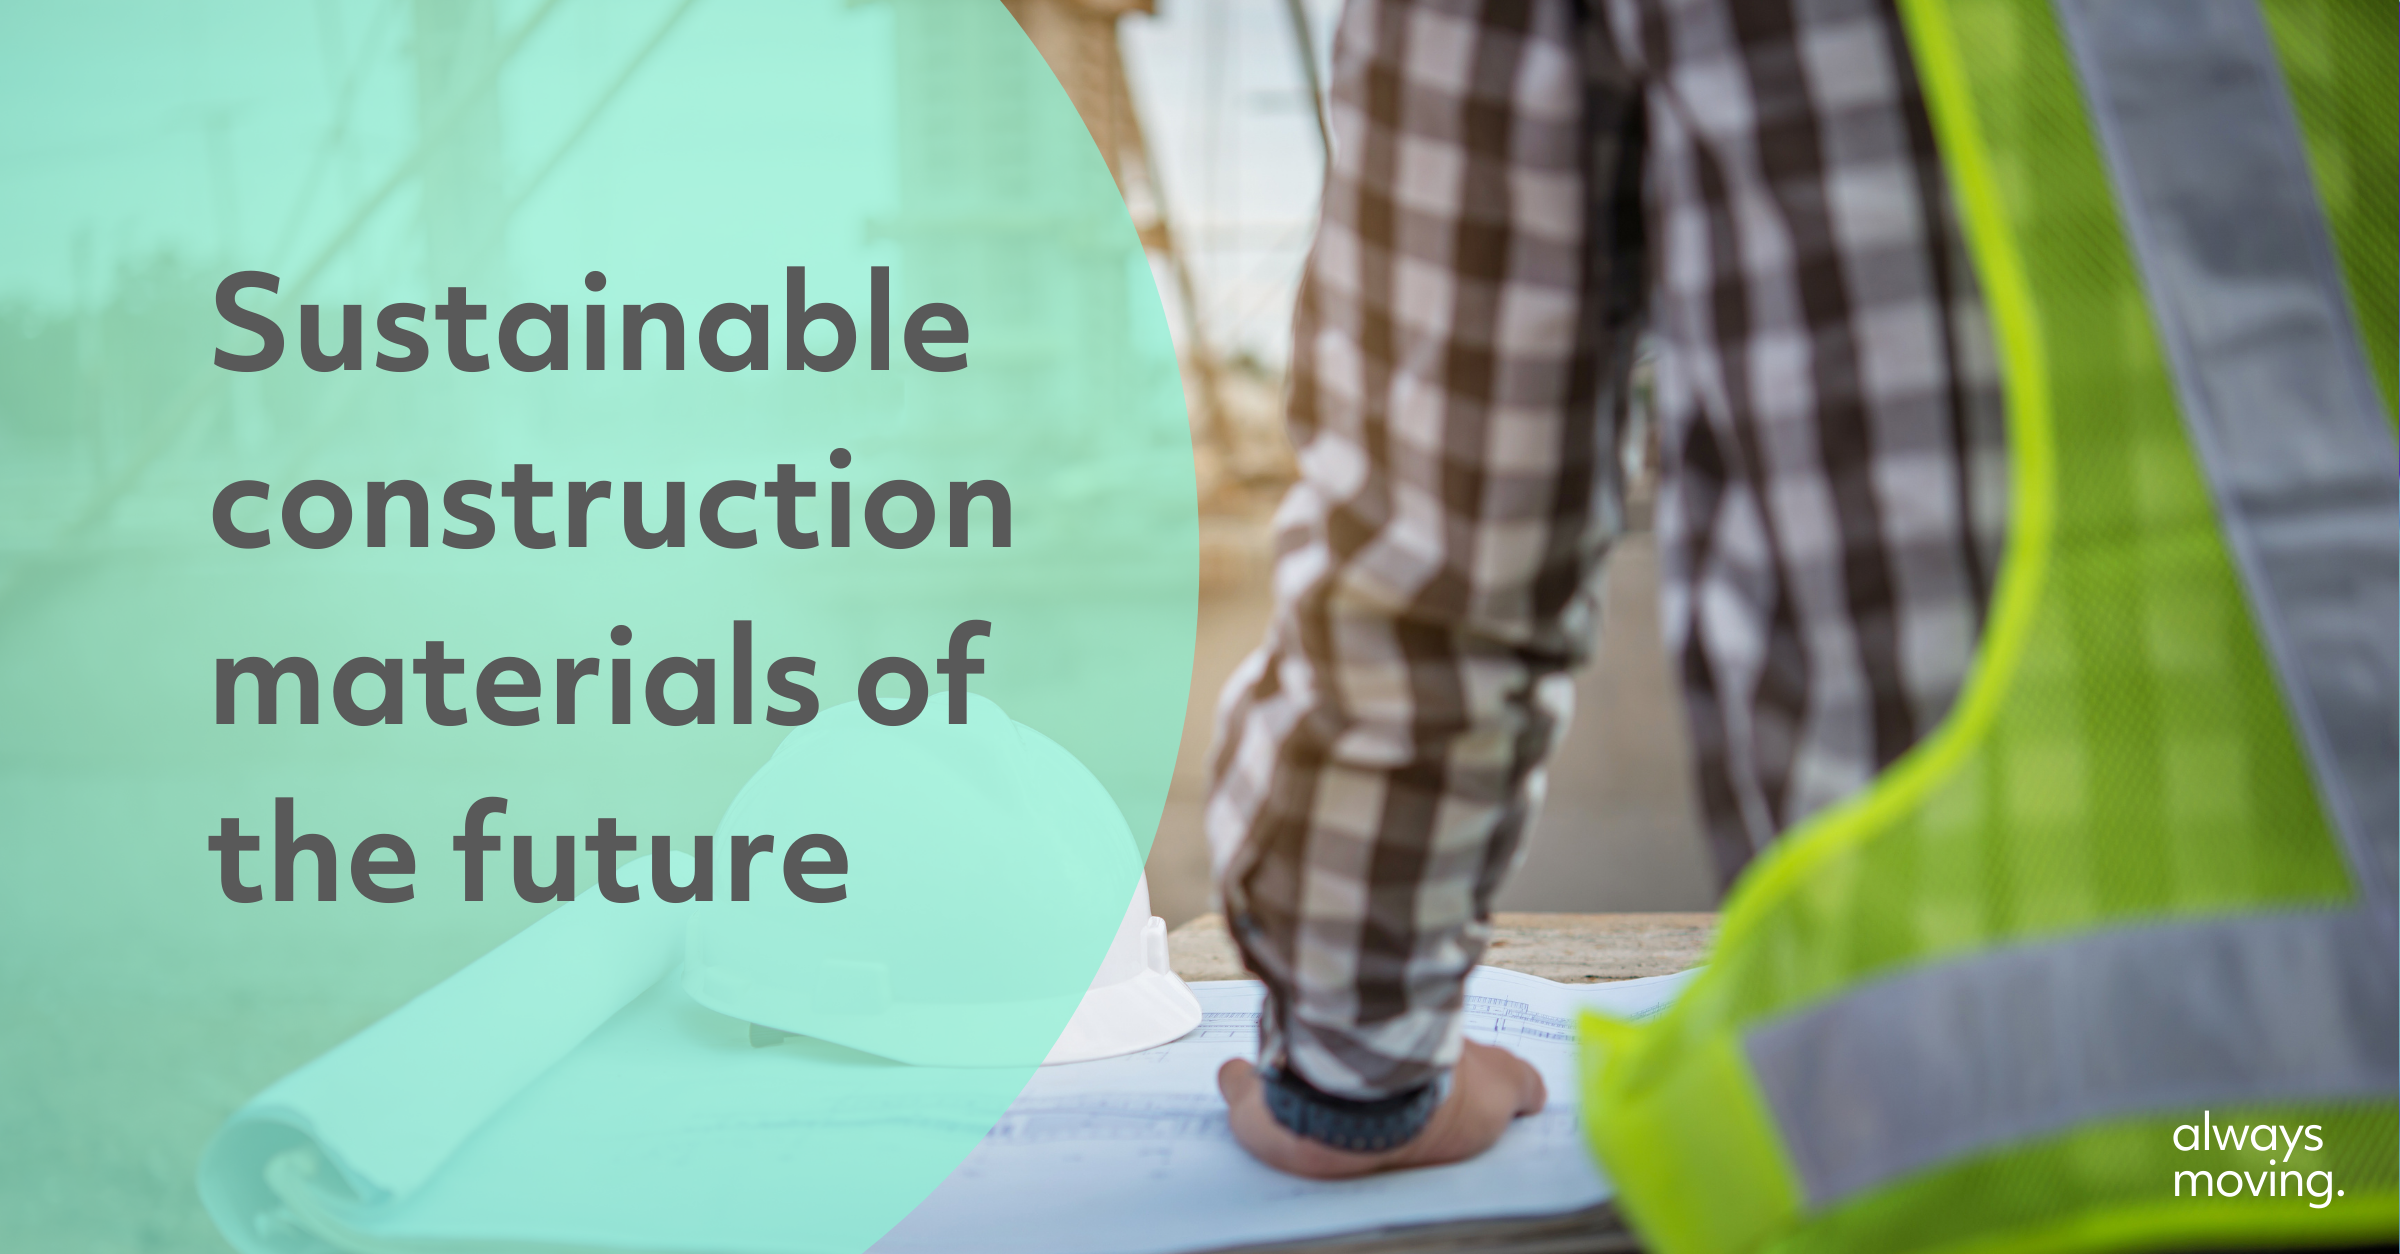 Sustainable materials shaping the future of construction